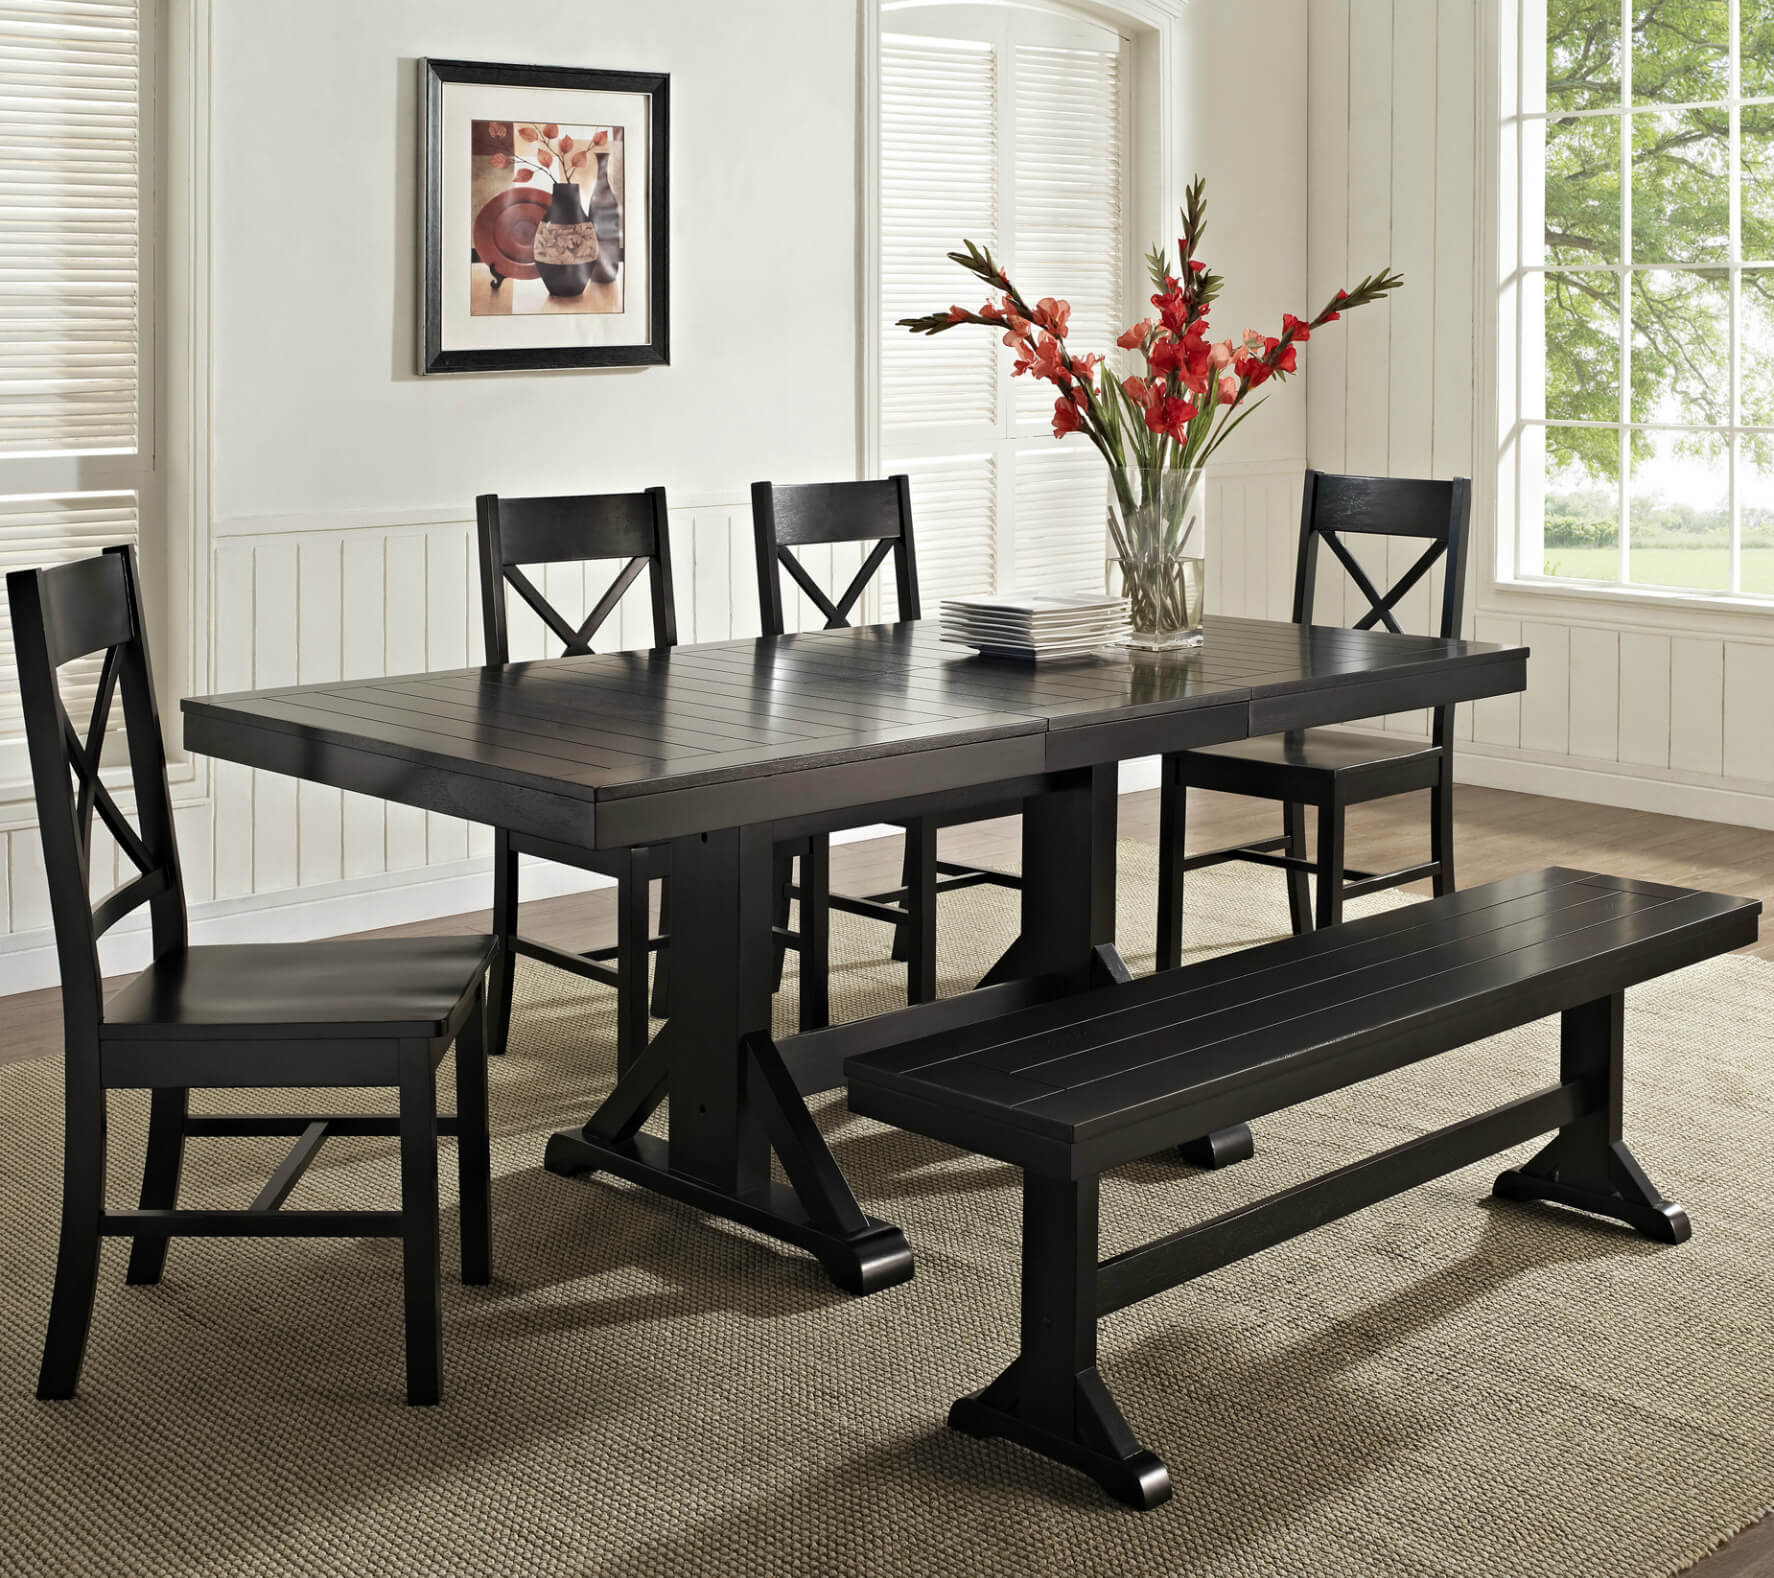 Hereu0027s A Great Cottage Style Dining Set With Bench. While Itu0027s A Dark  Finish,